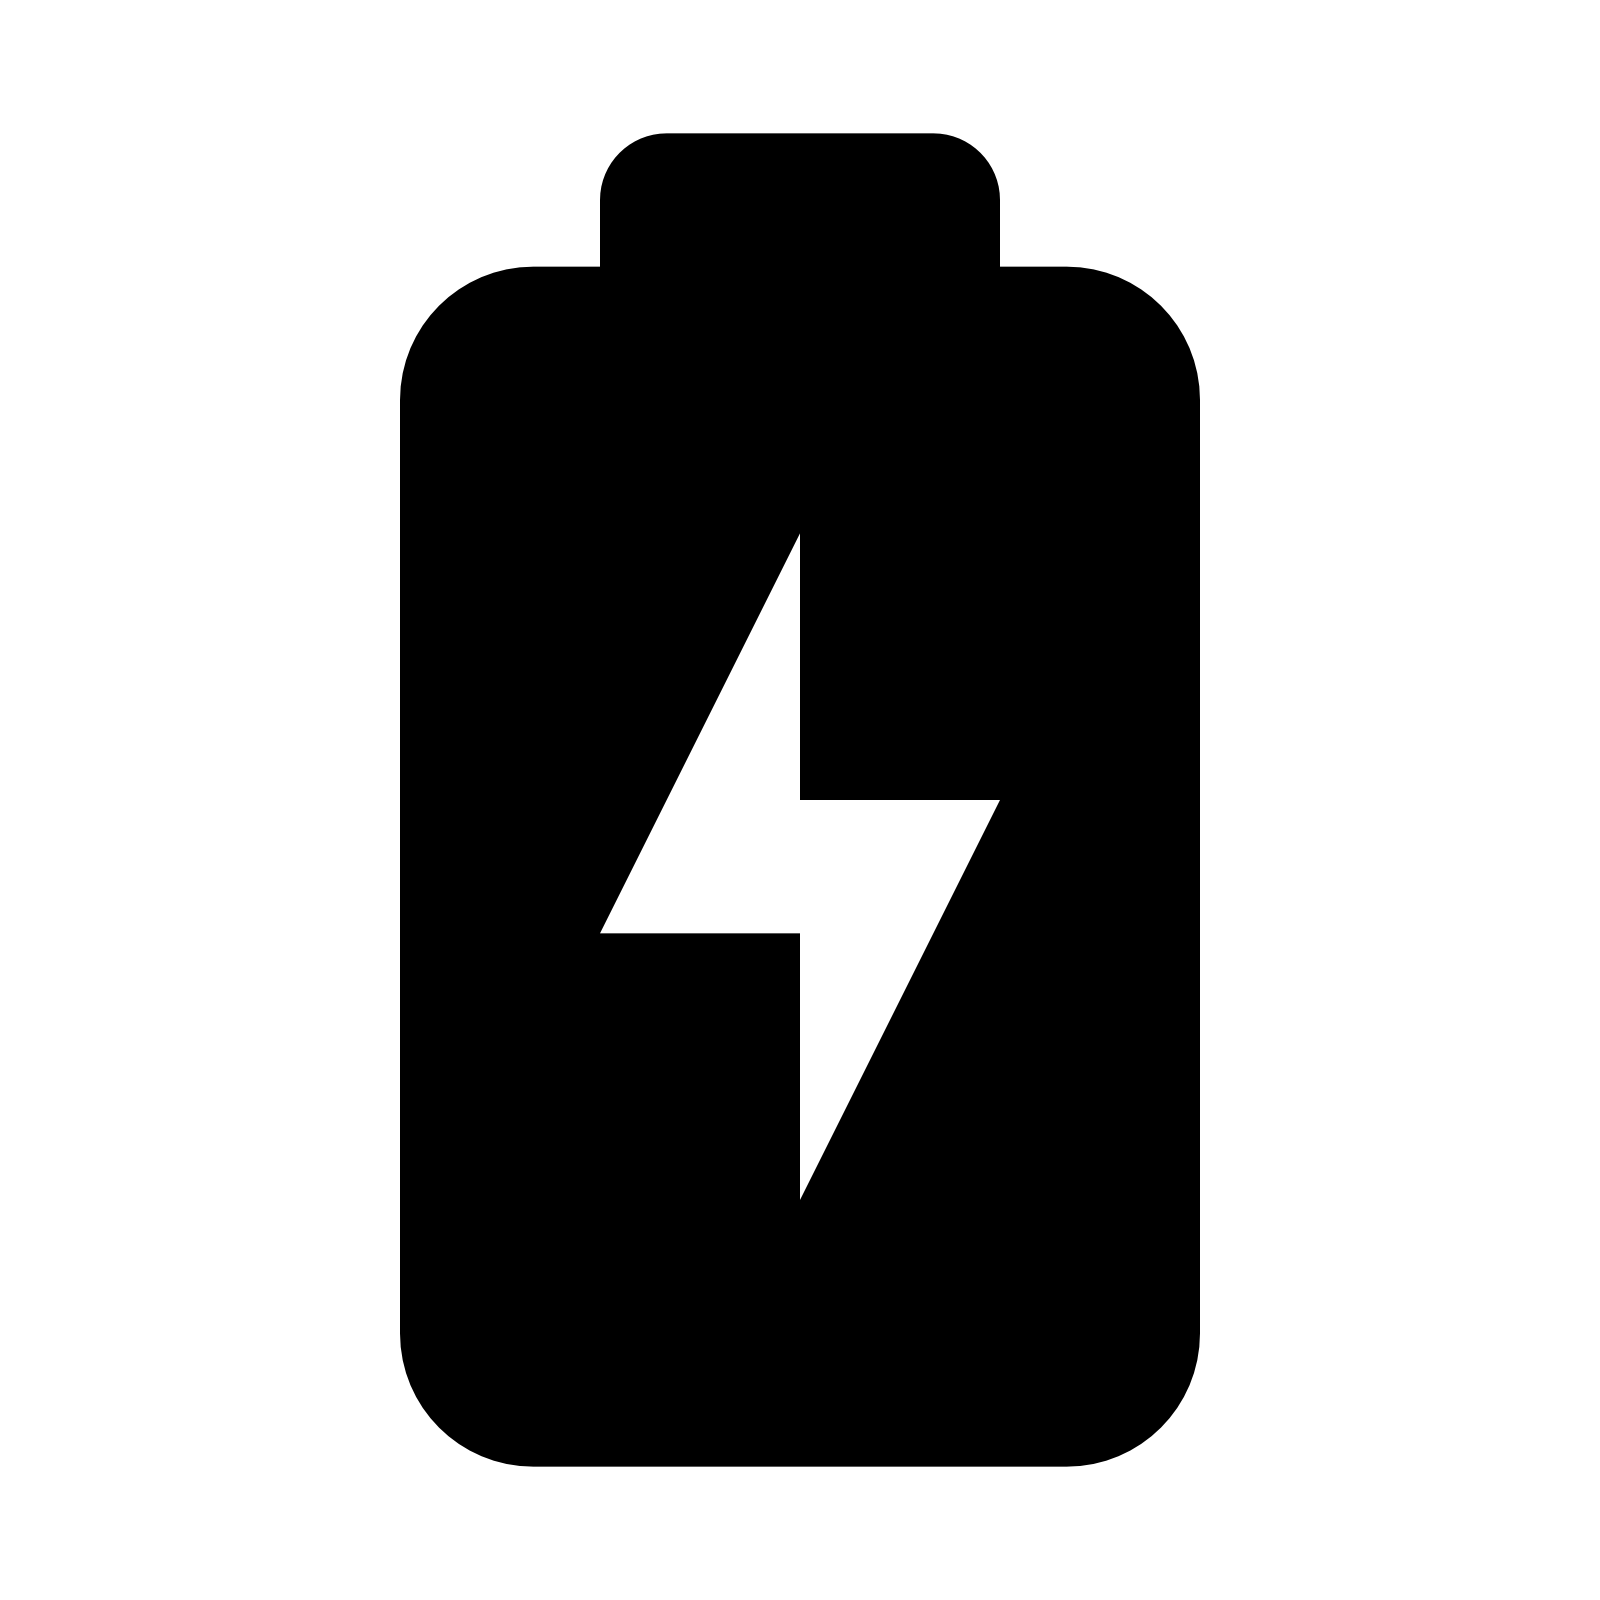 Android battery icon png. Clipart charging photos transparentpng